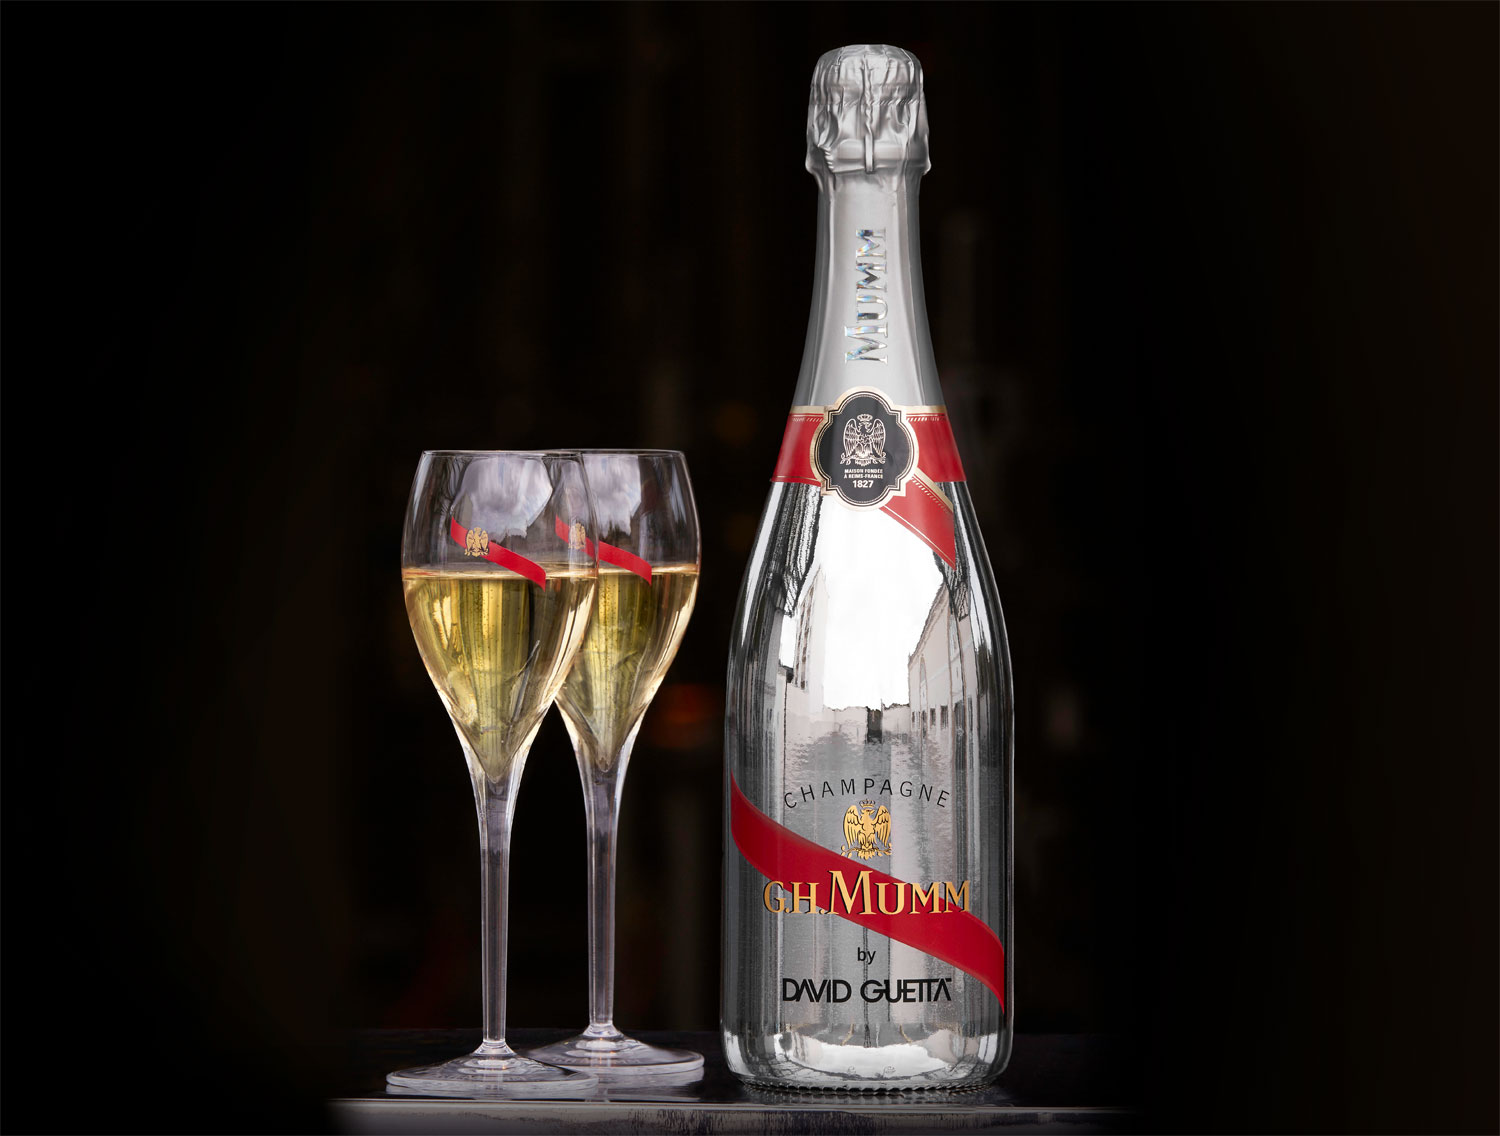 Maison Mumm and David Guetta: when the icon of celebration invites the icon of the night for a unique collaboration